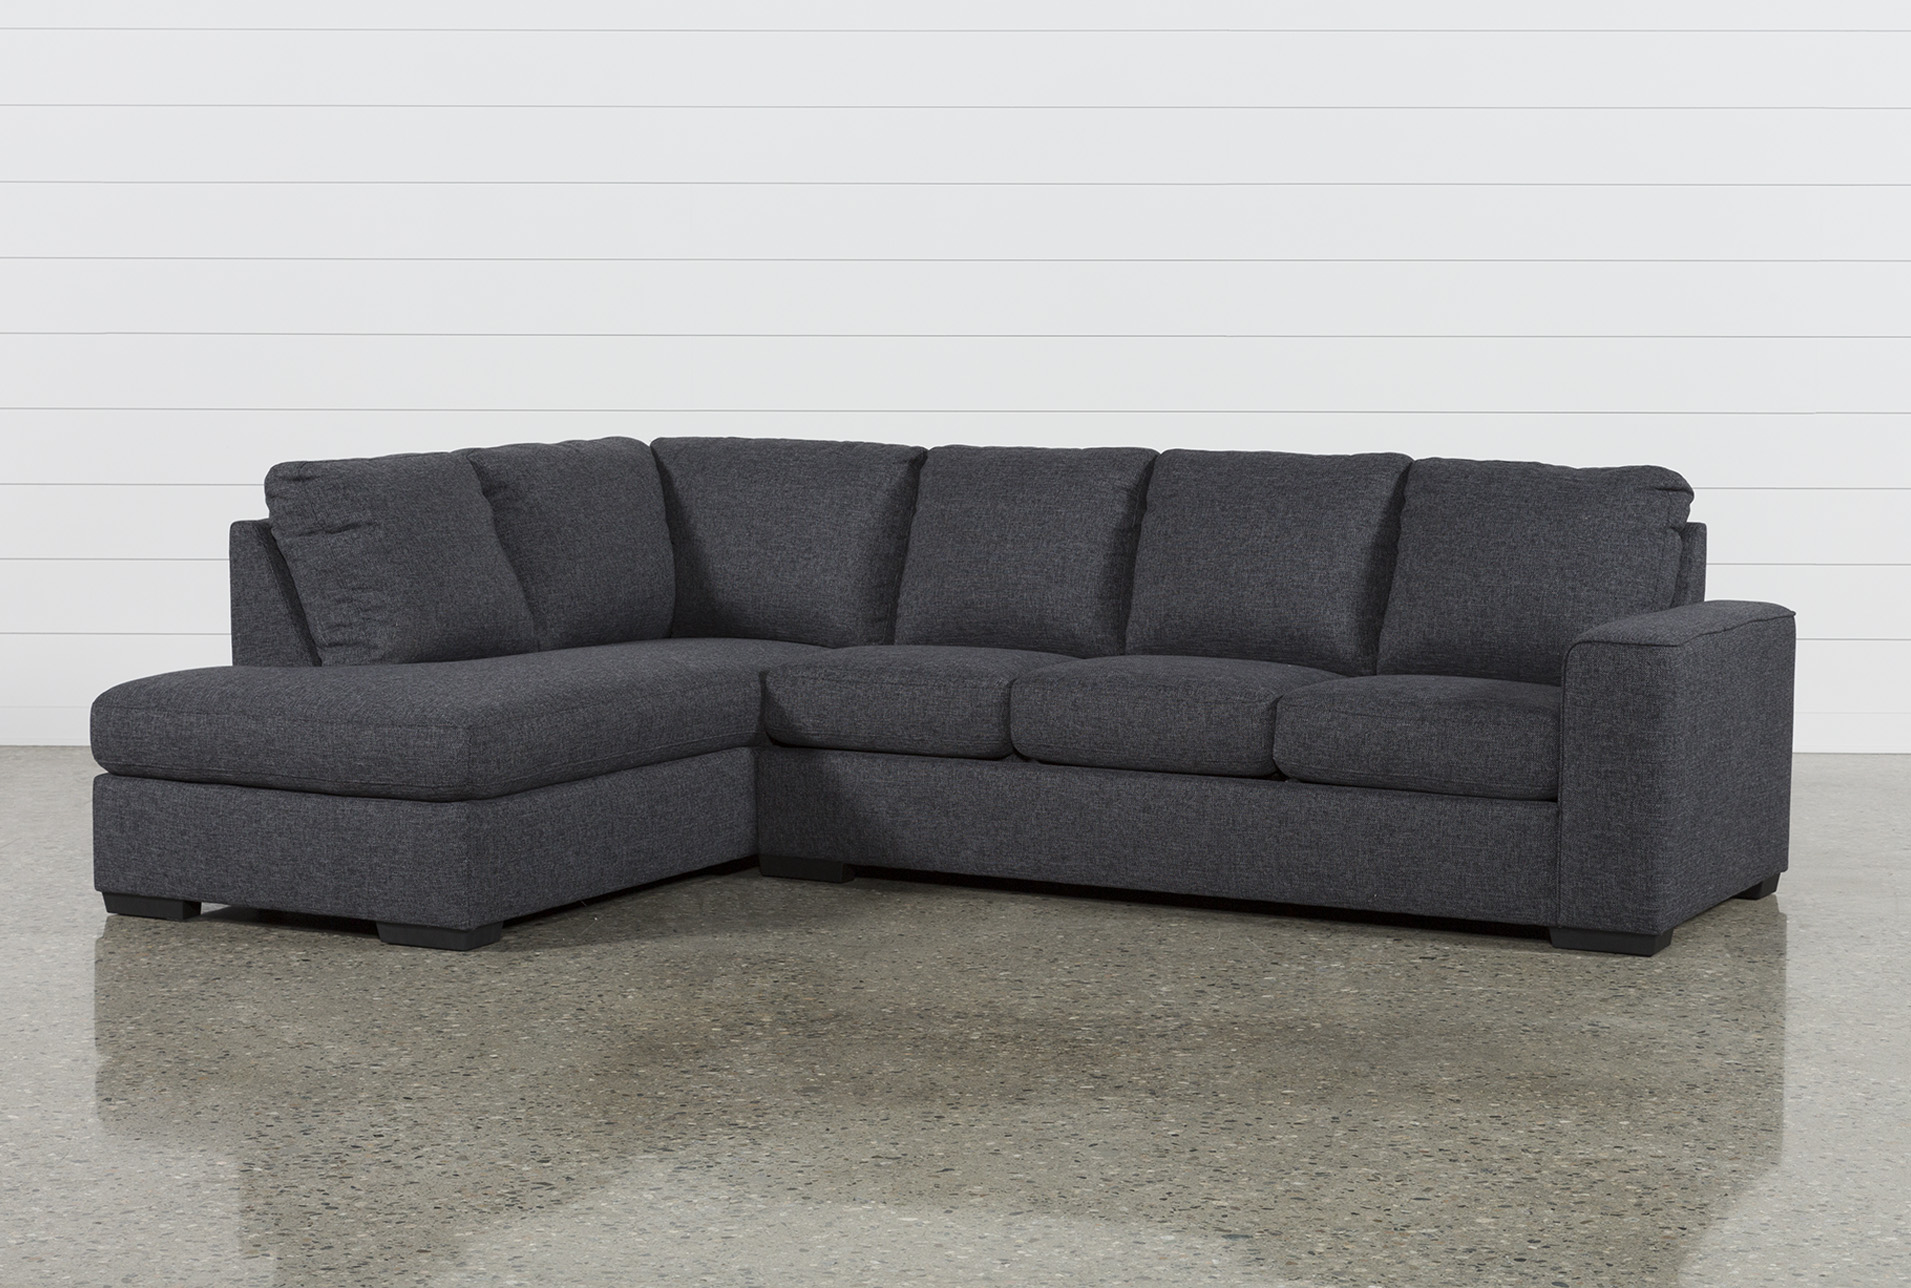 grey sectional sleeper sofas living spaces rh livingspaces com grey leather sectional sleeper sofa